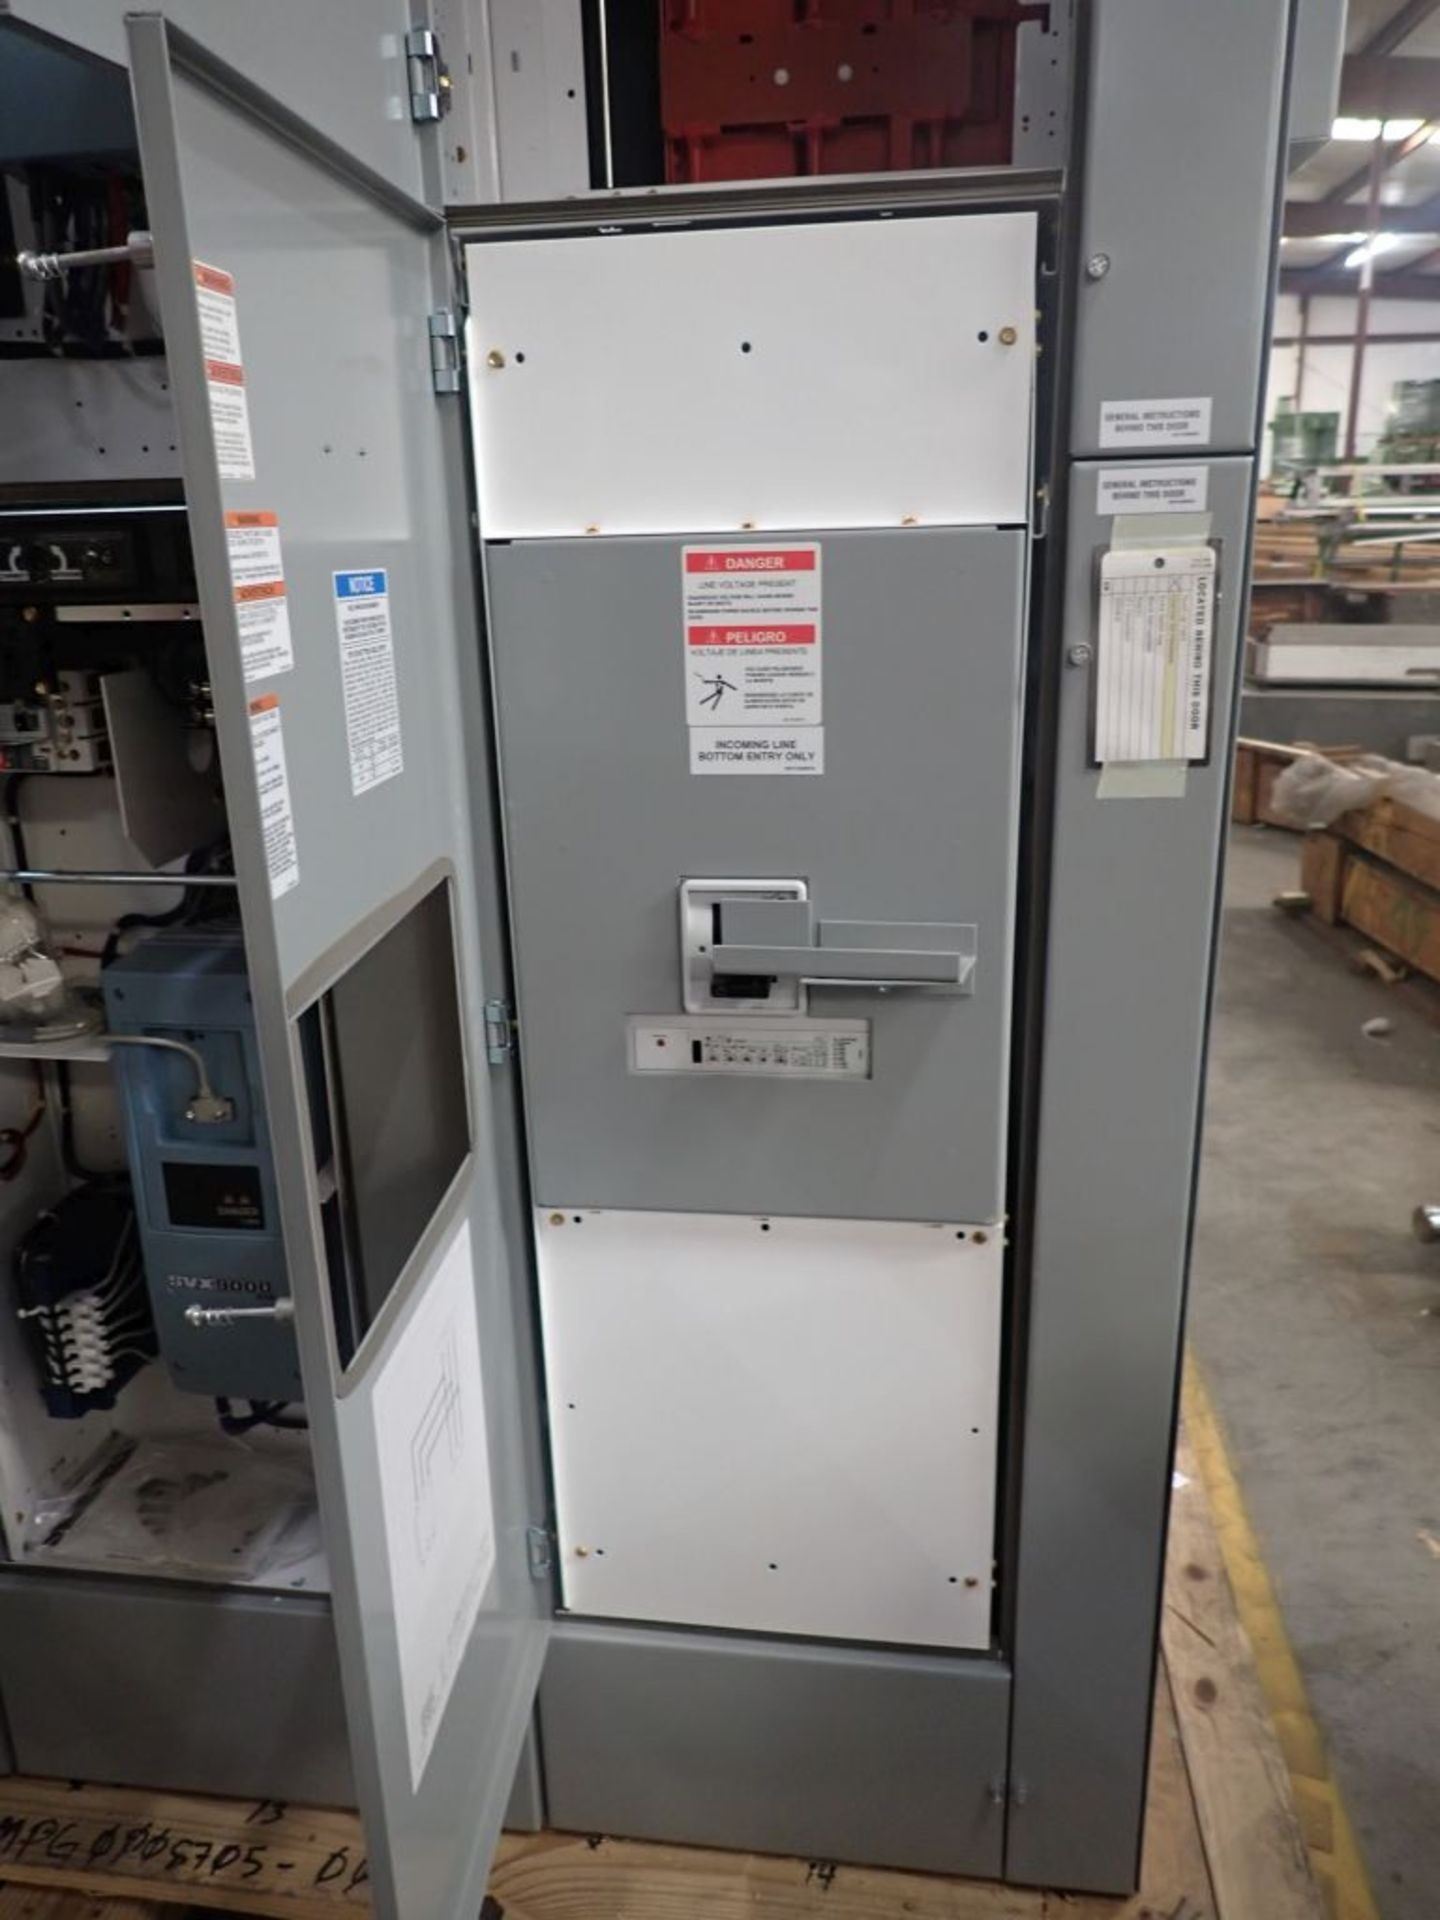 Eaton Freedom 2100 Series Motor Control Center   (4) SVX900-30A, with Eaton AF Drives, SVX9000, - Image 51 of 60